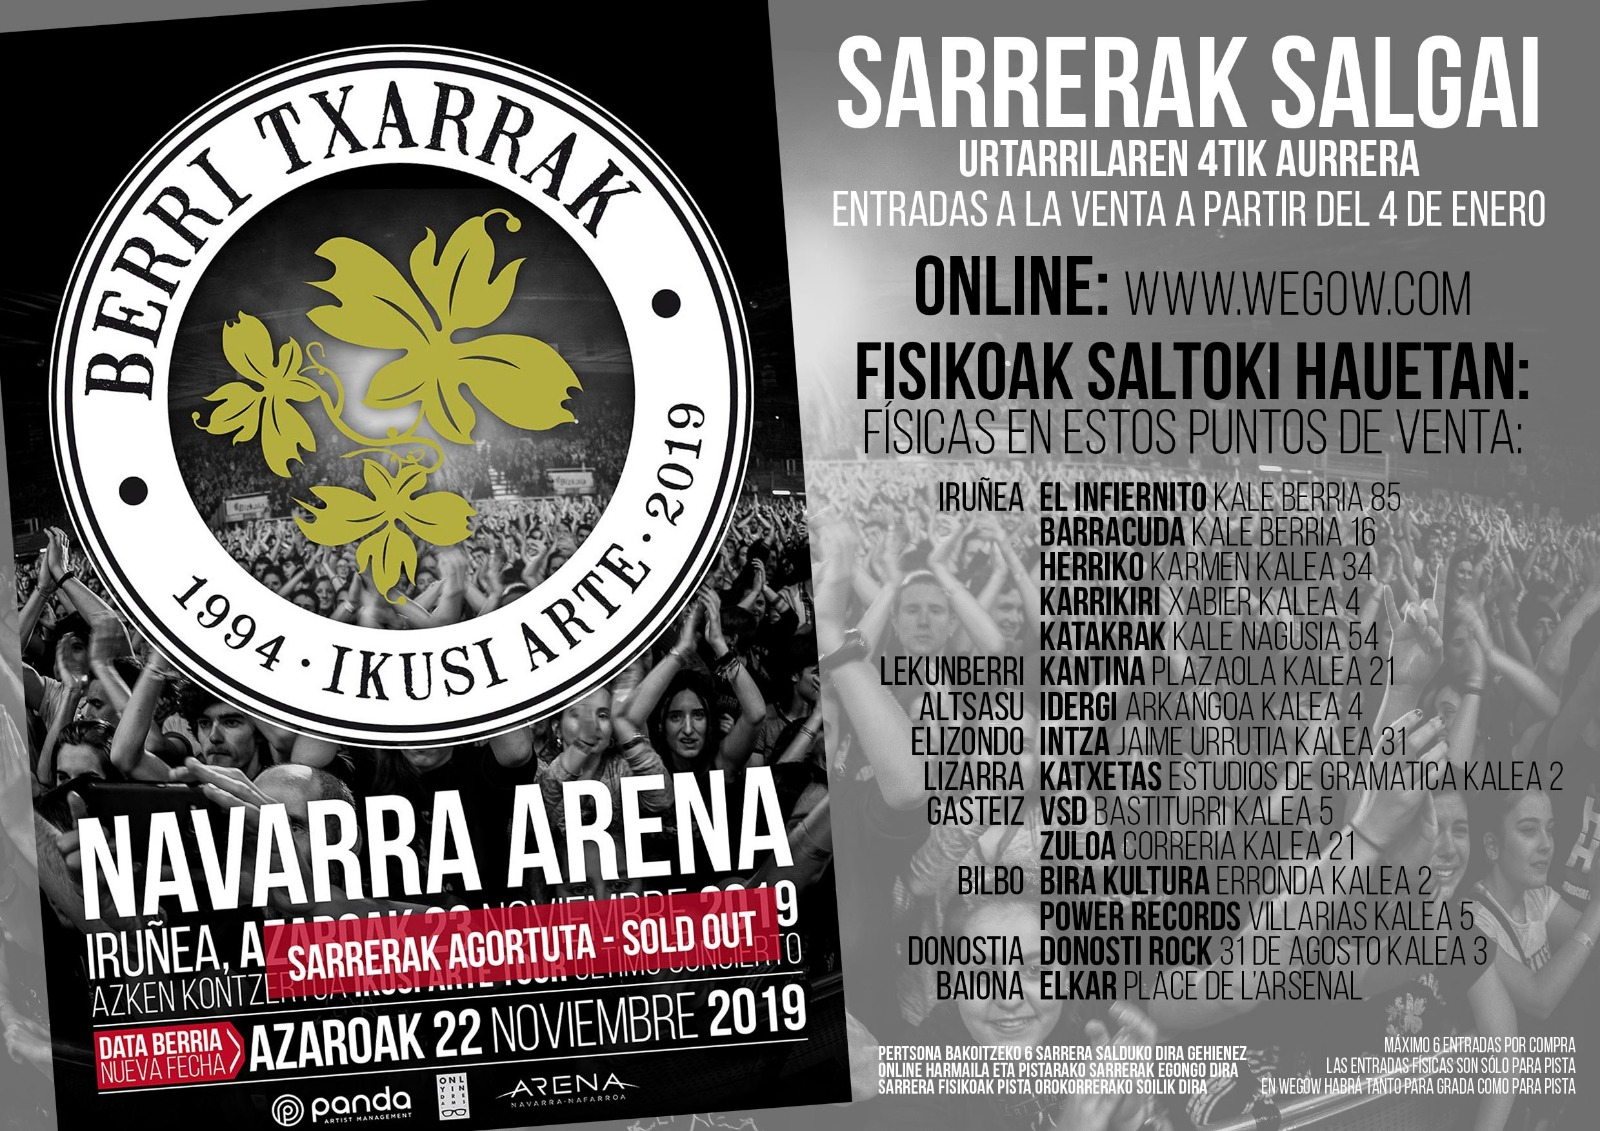 SECOND SHOW ADDED AT PAMPLONA's NAVARRA ARENA (Nov 22nd)